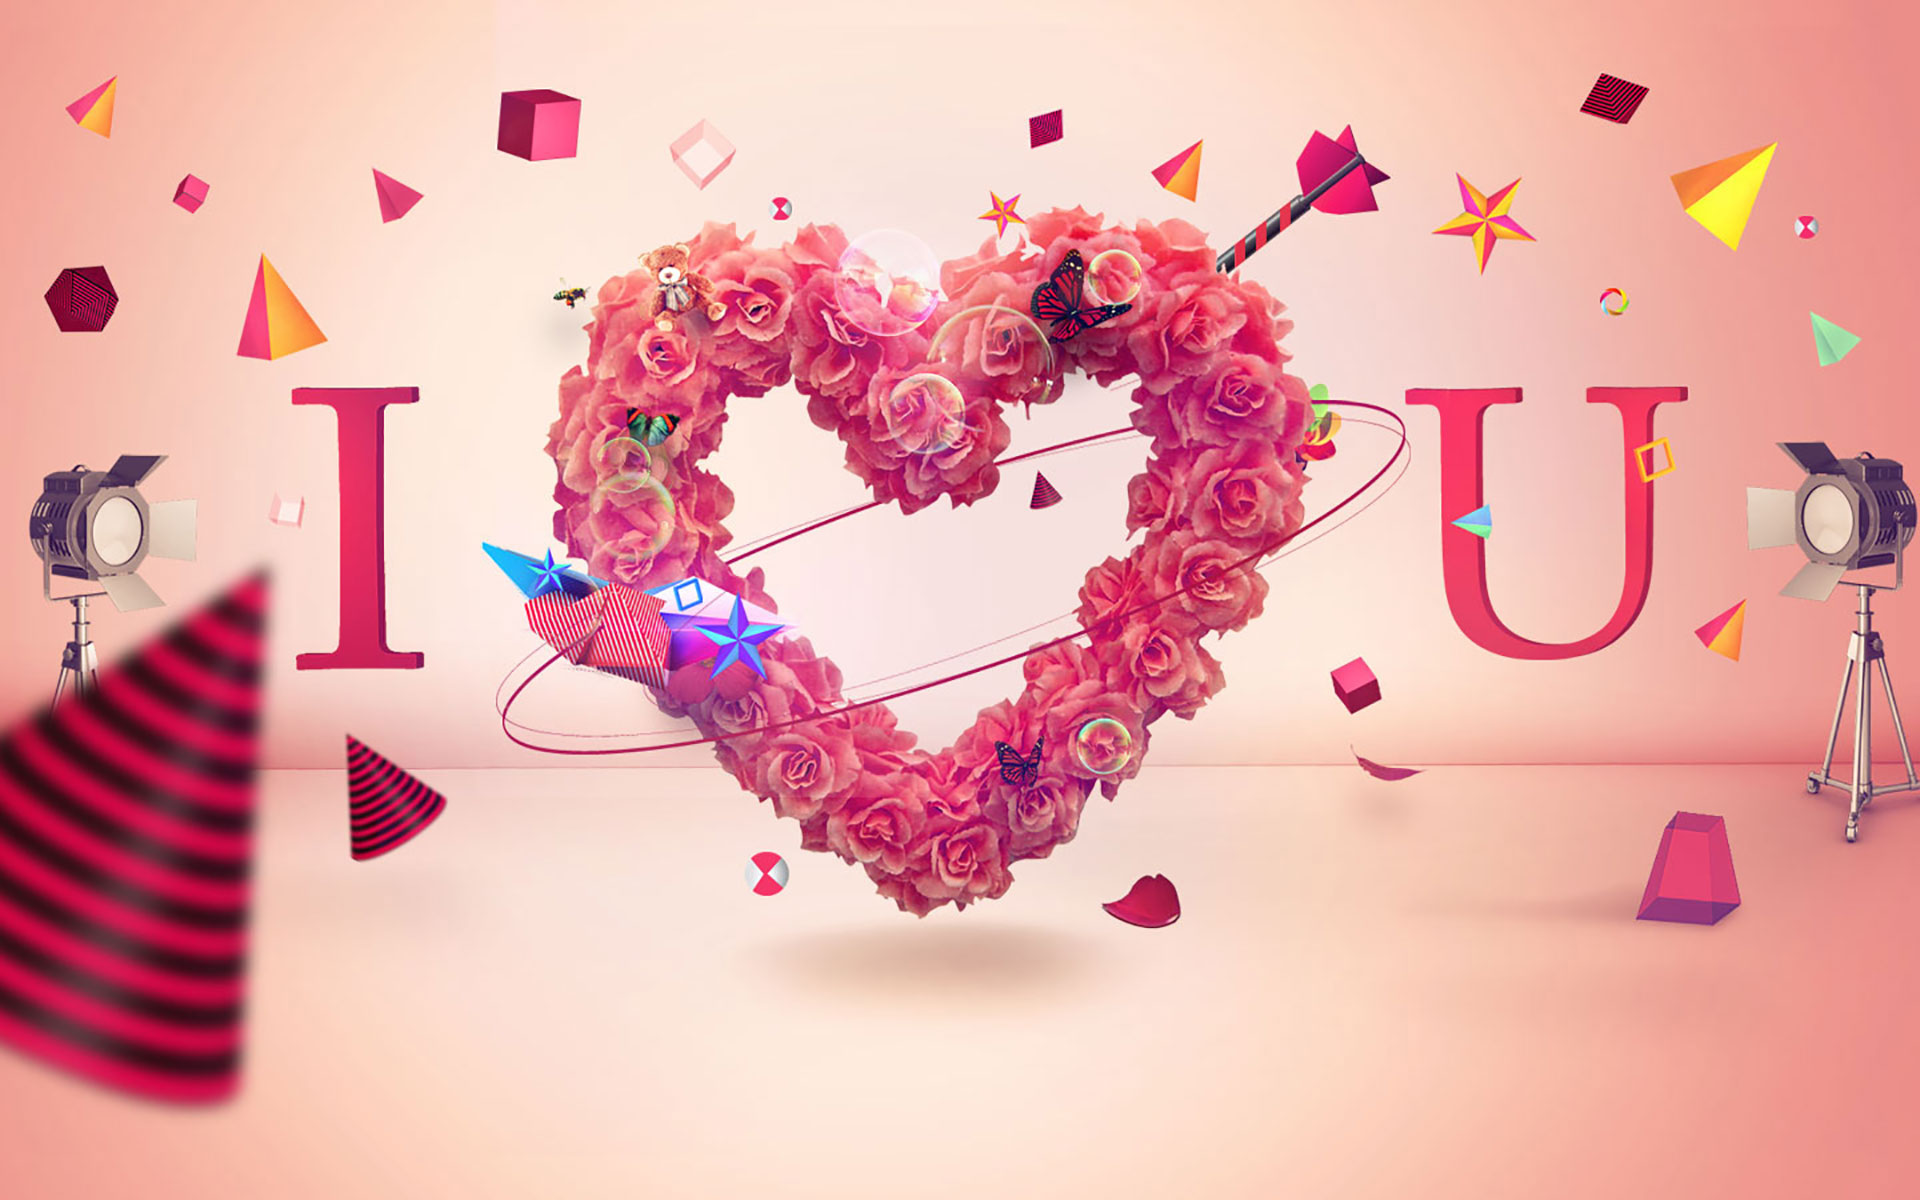 Download HD Wallpaper Of Love